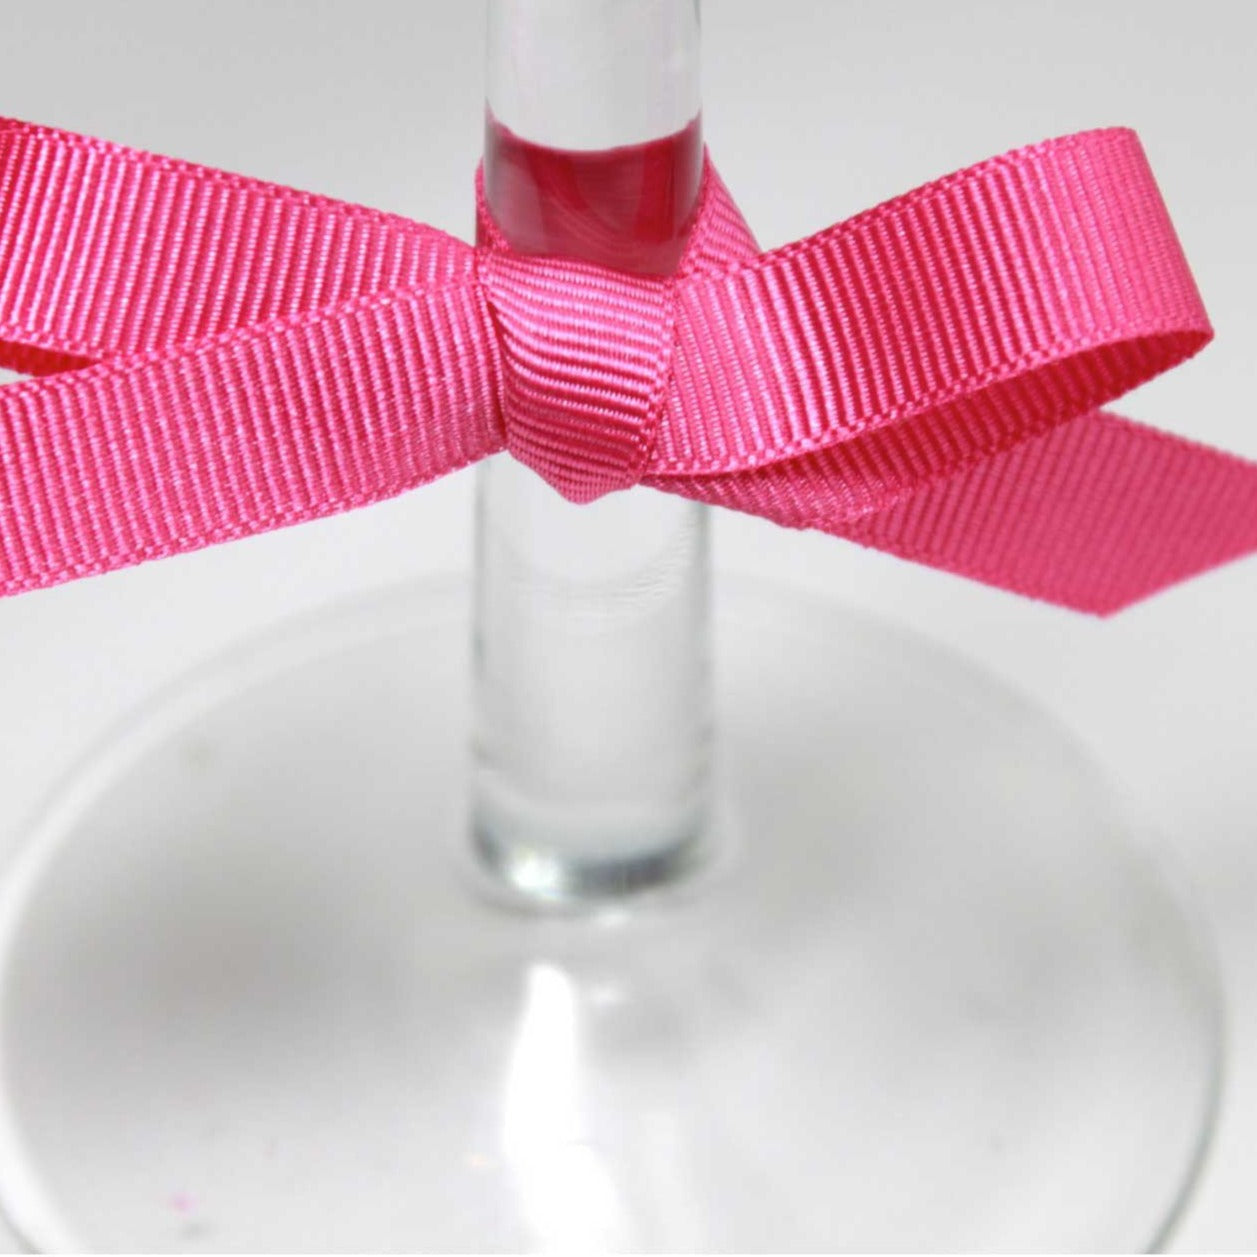 Berisfords Grosgrain Ribbon - Shocking Pink